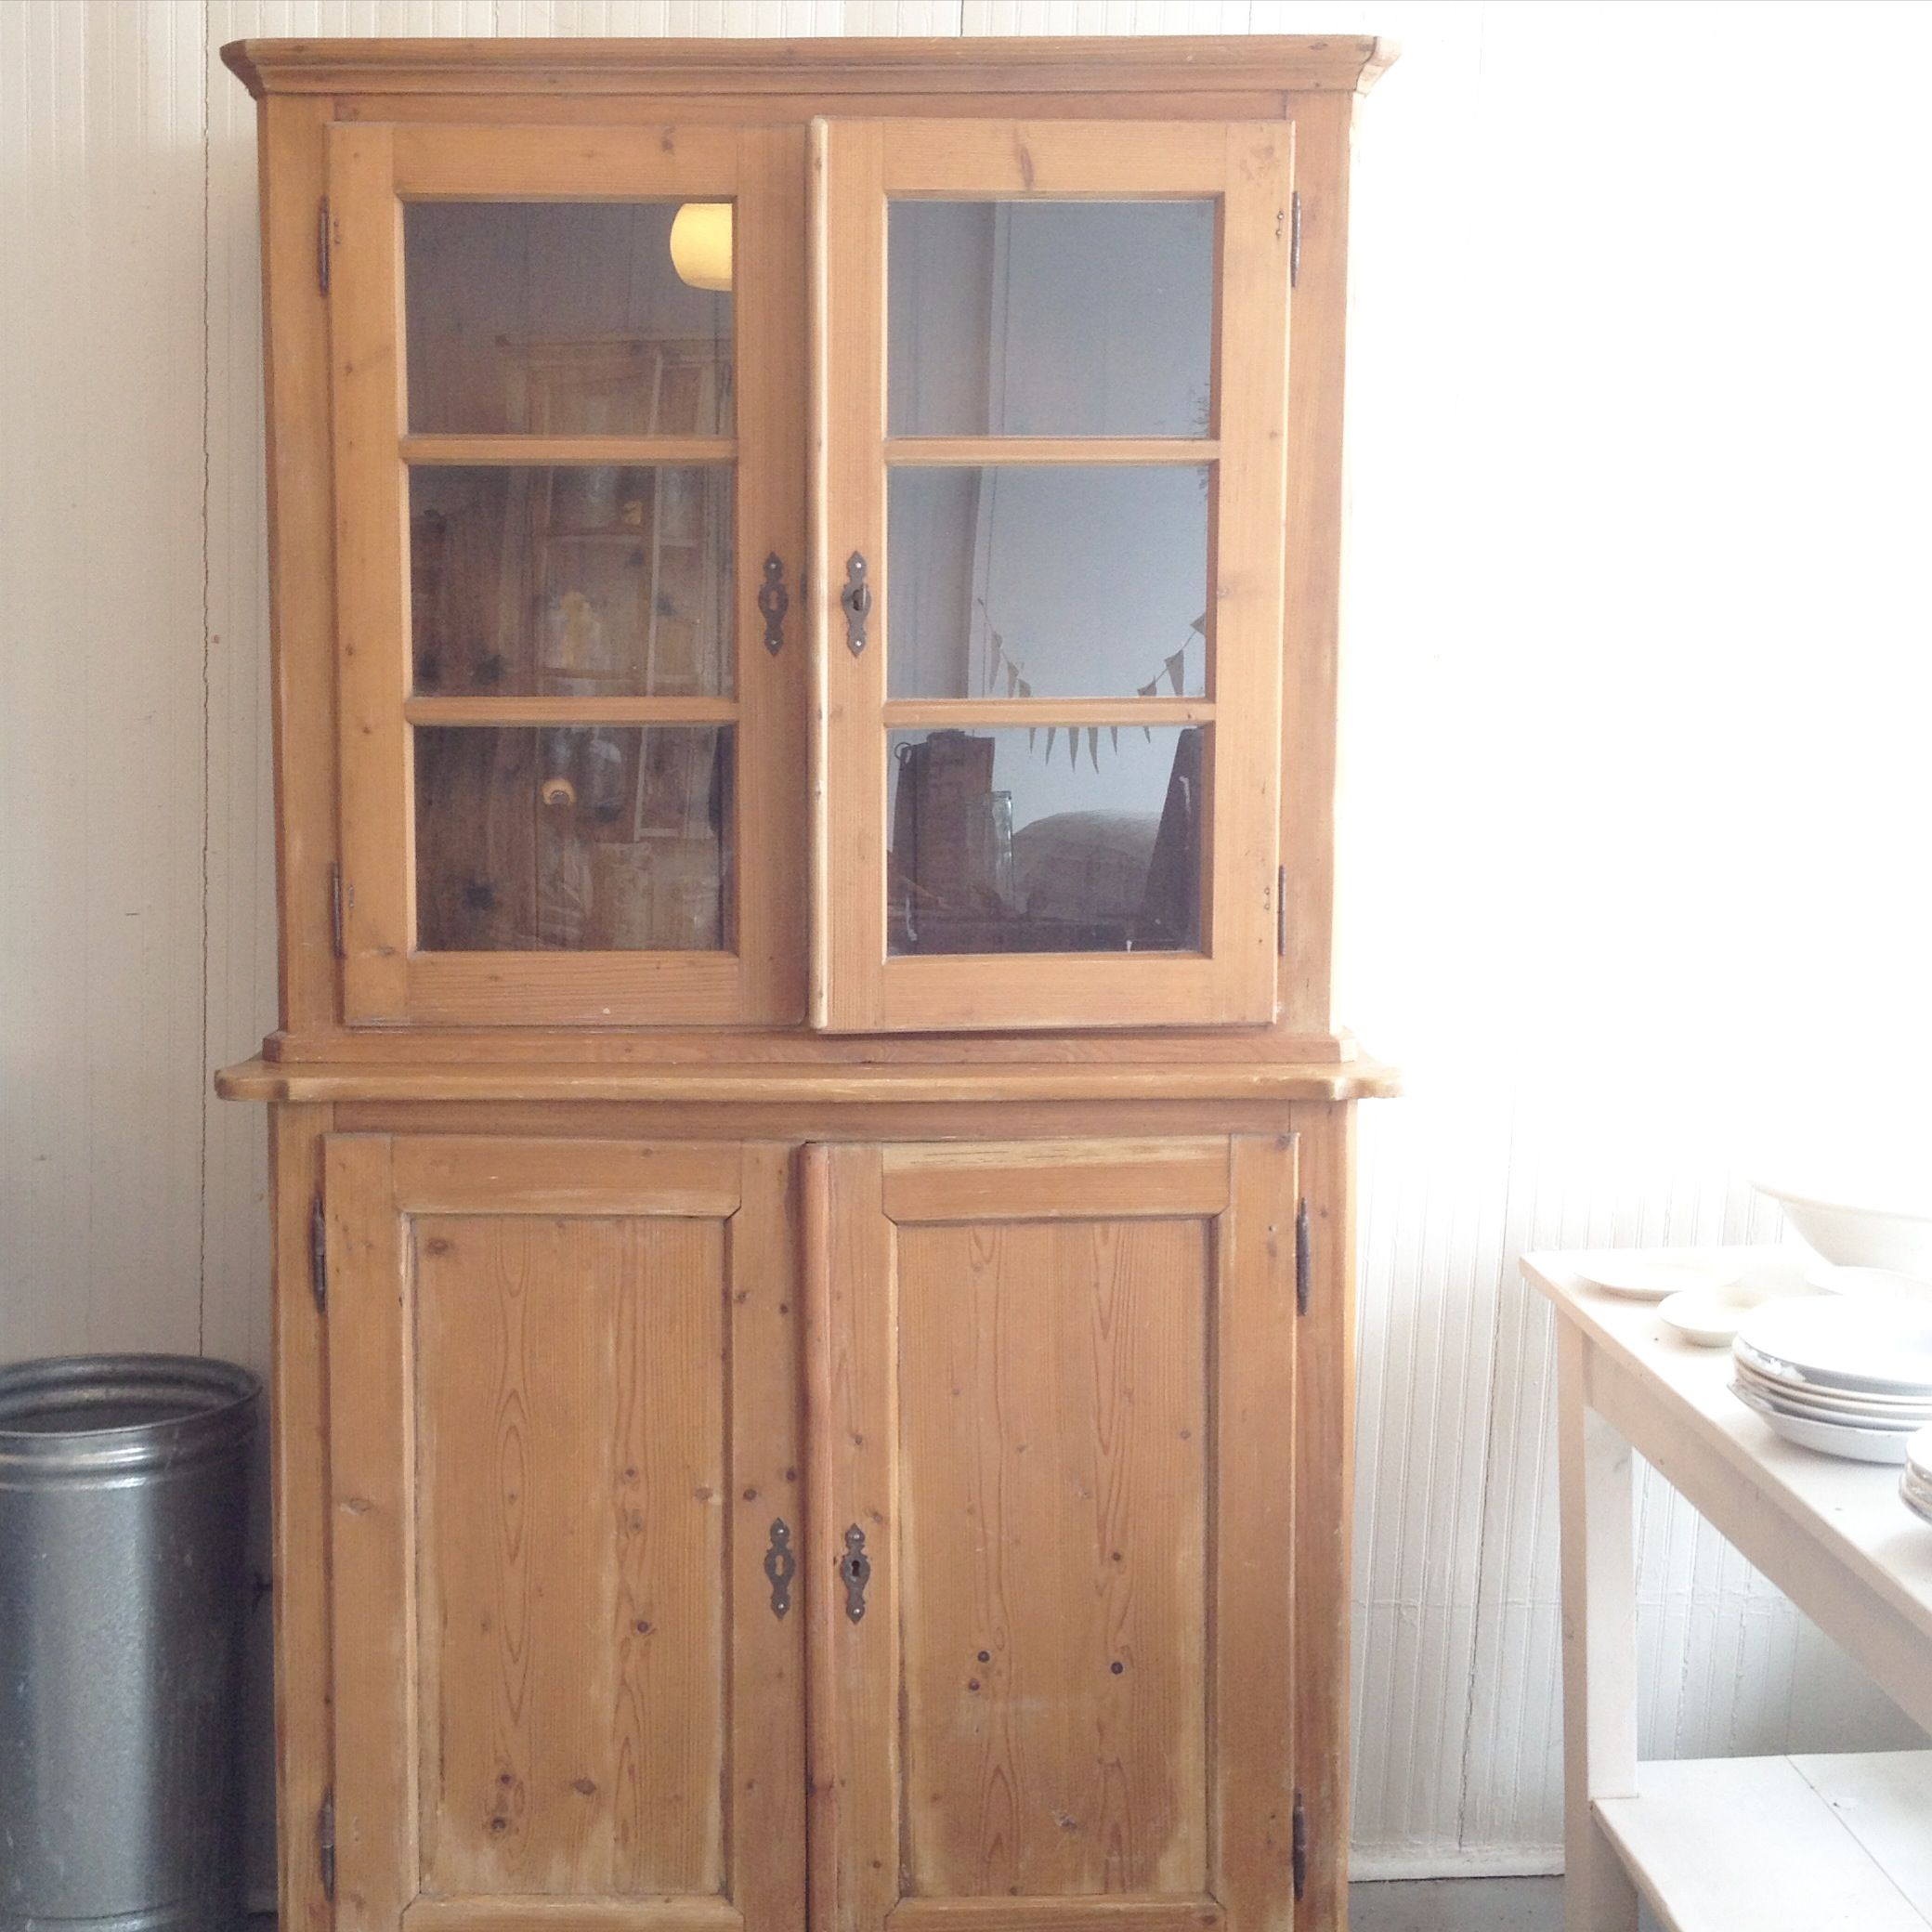 glass door antique pine cupboard (With images) Farmhouse